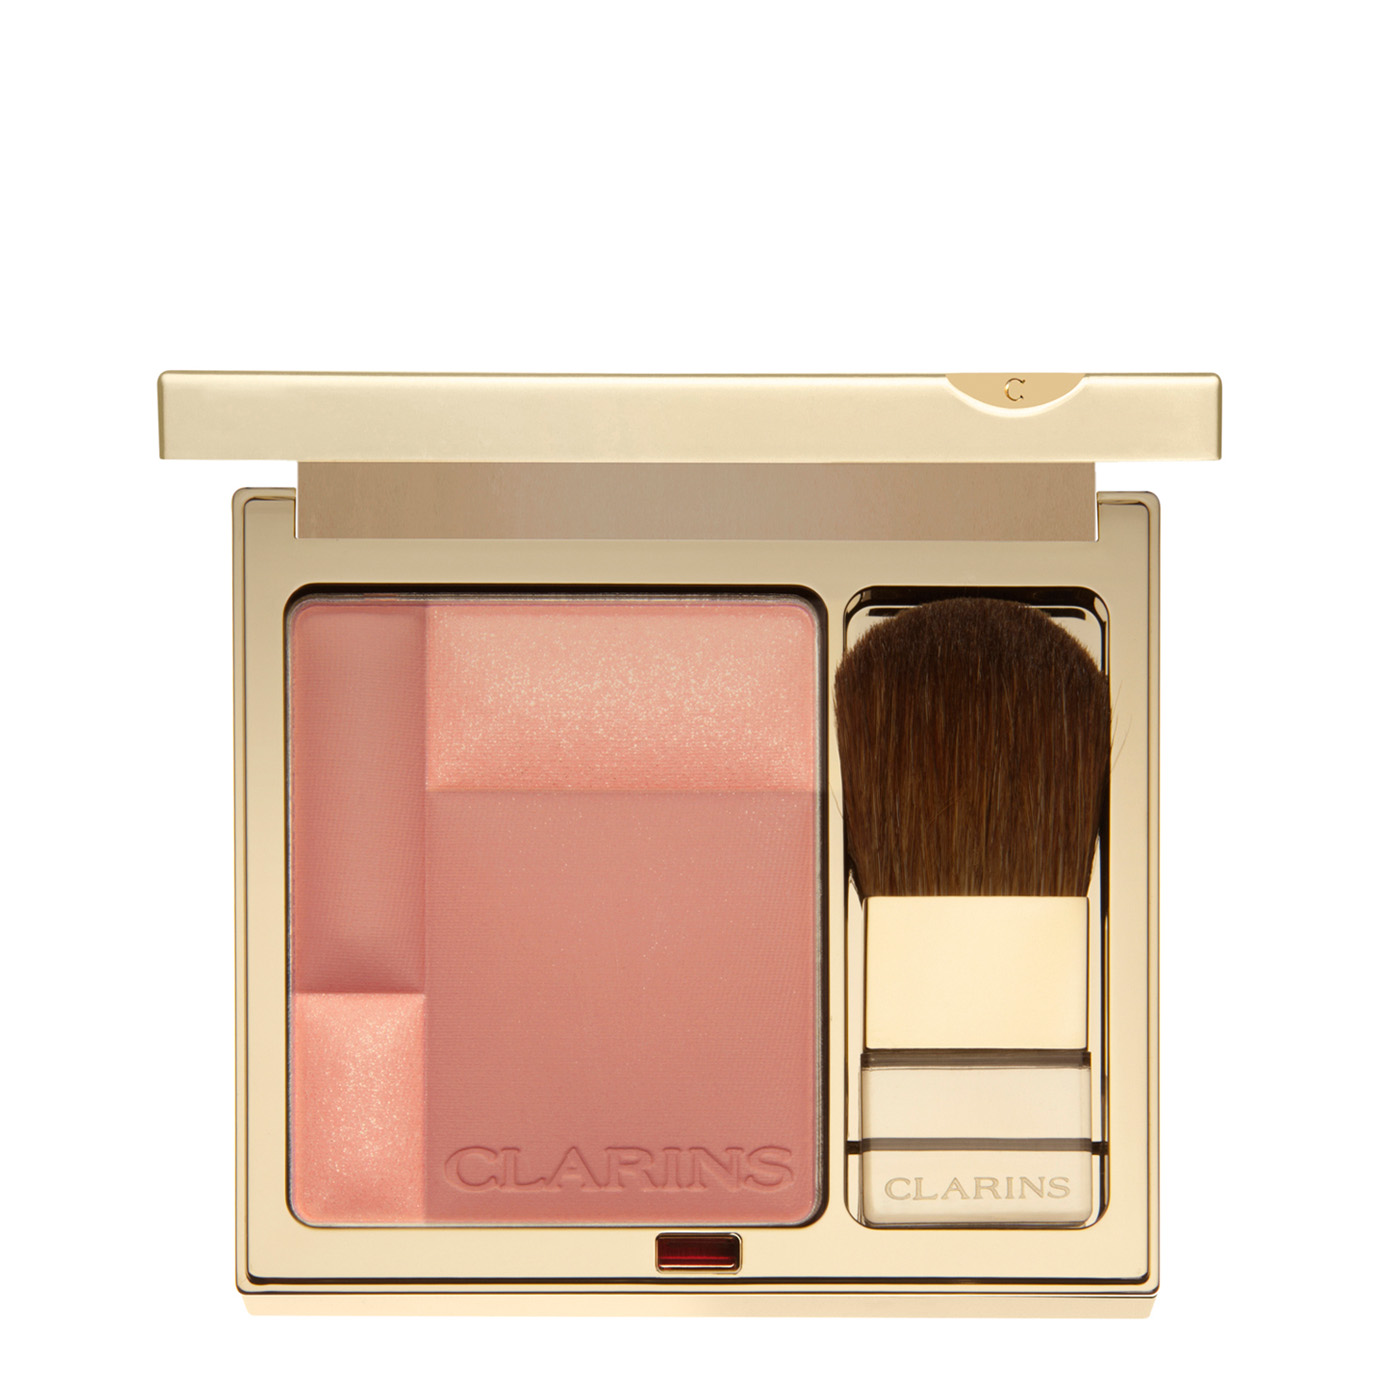 CLARINS BLUSH PRODIGE FARD 05 ROSE WOOD